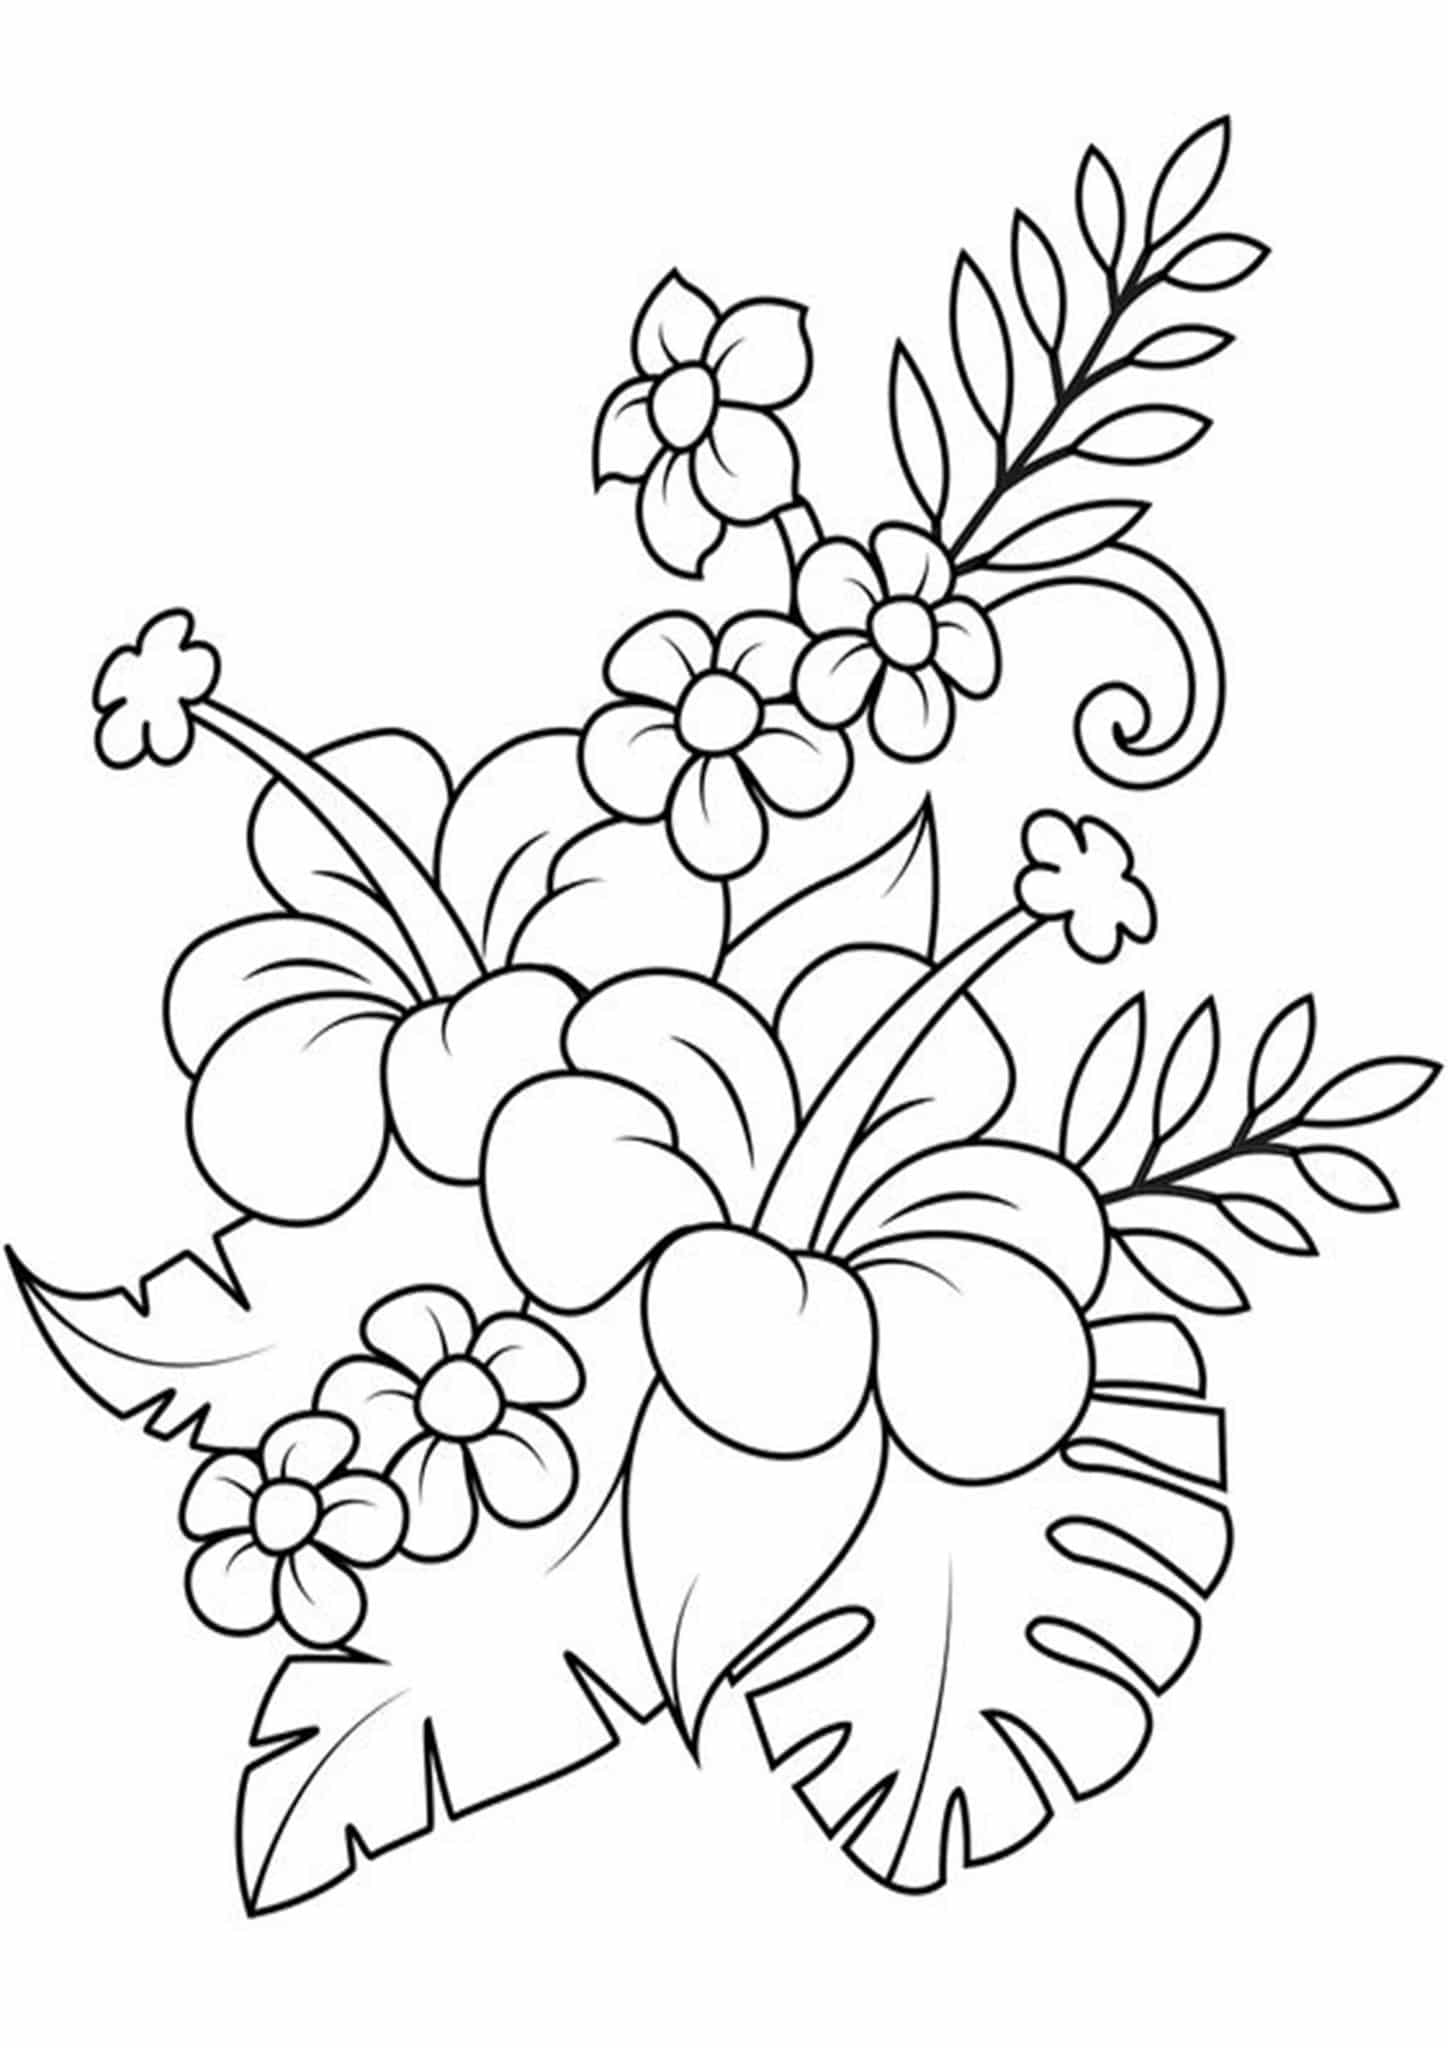 picture of a flower to color tulip coloring pages print color craft to flower picture color of a